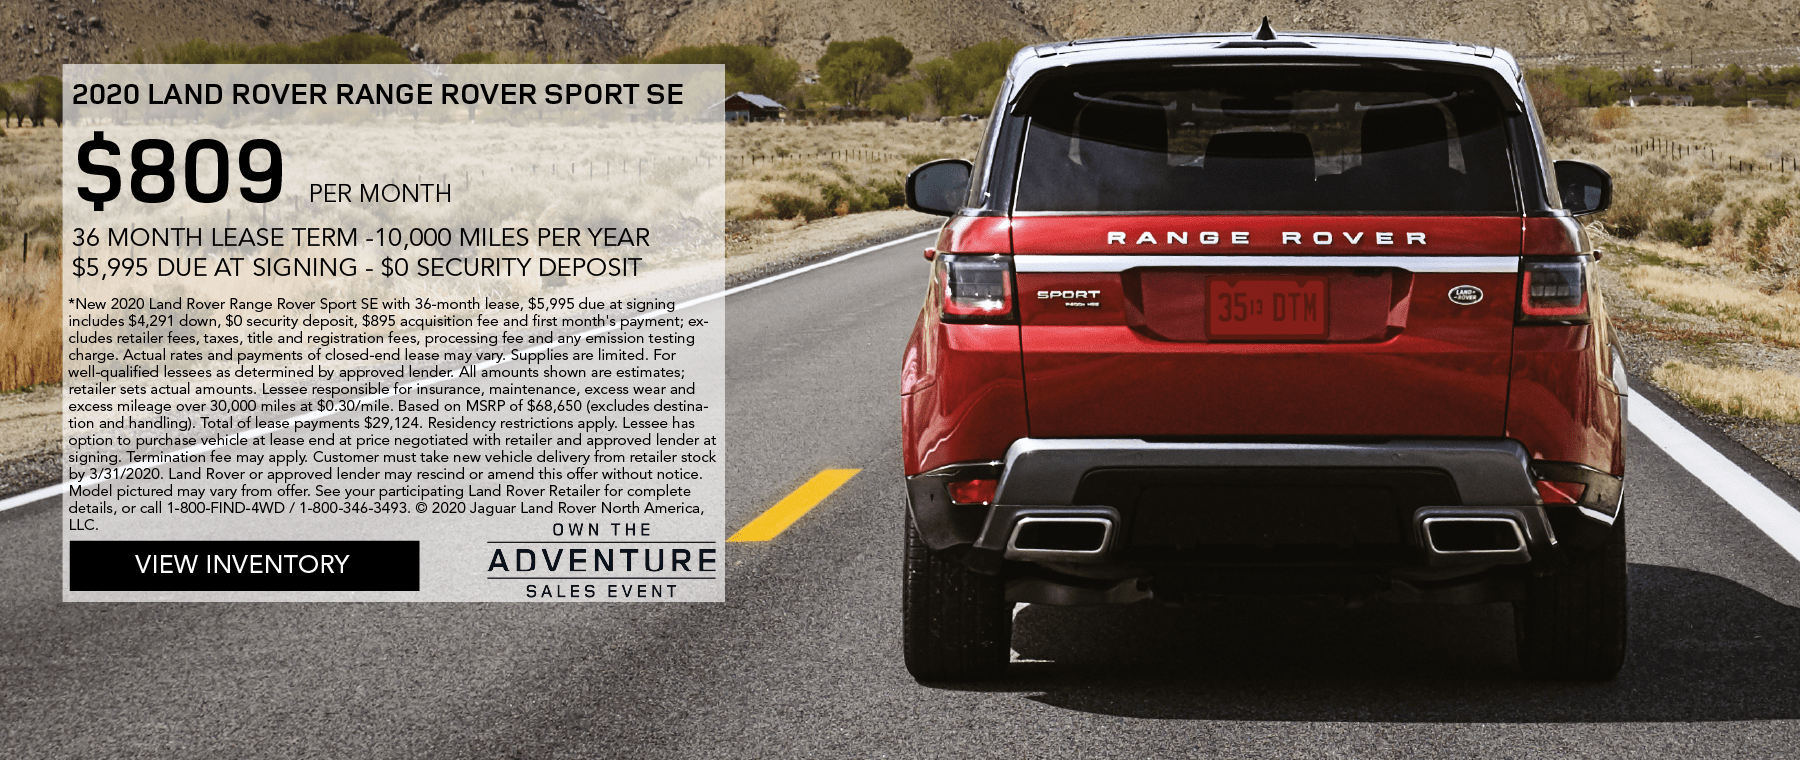 2020 RANGE ROVER SPORT SE. $809 PER MONTH. 36 MONTH LEASE TERM. $5,995 CASH DUE AT SIGNING. $0 SECURITY DEPOSIT. 10,000 MILES PER YEAR. OFFER ENDS 3/31/2020. OWN THE ADVENTURE SALES EVENT. VIEW INVENTORY. RED RANGE ROVER SPORT SE DRIVING DOWN ROAD THROUGH MOUNTAINS.